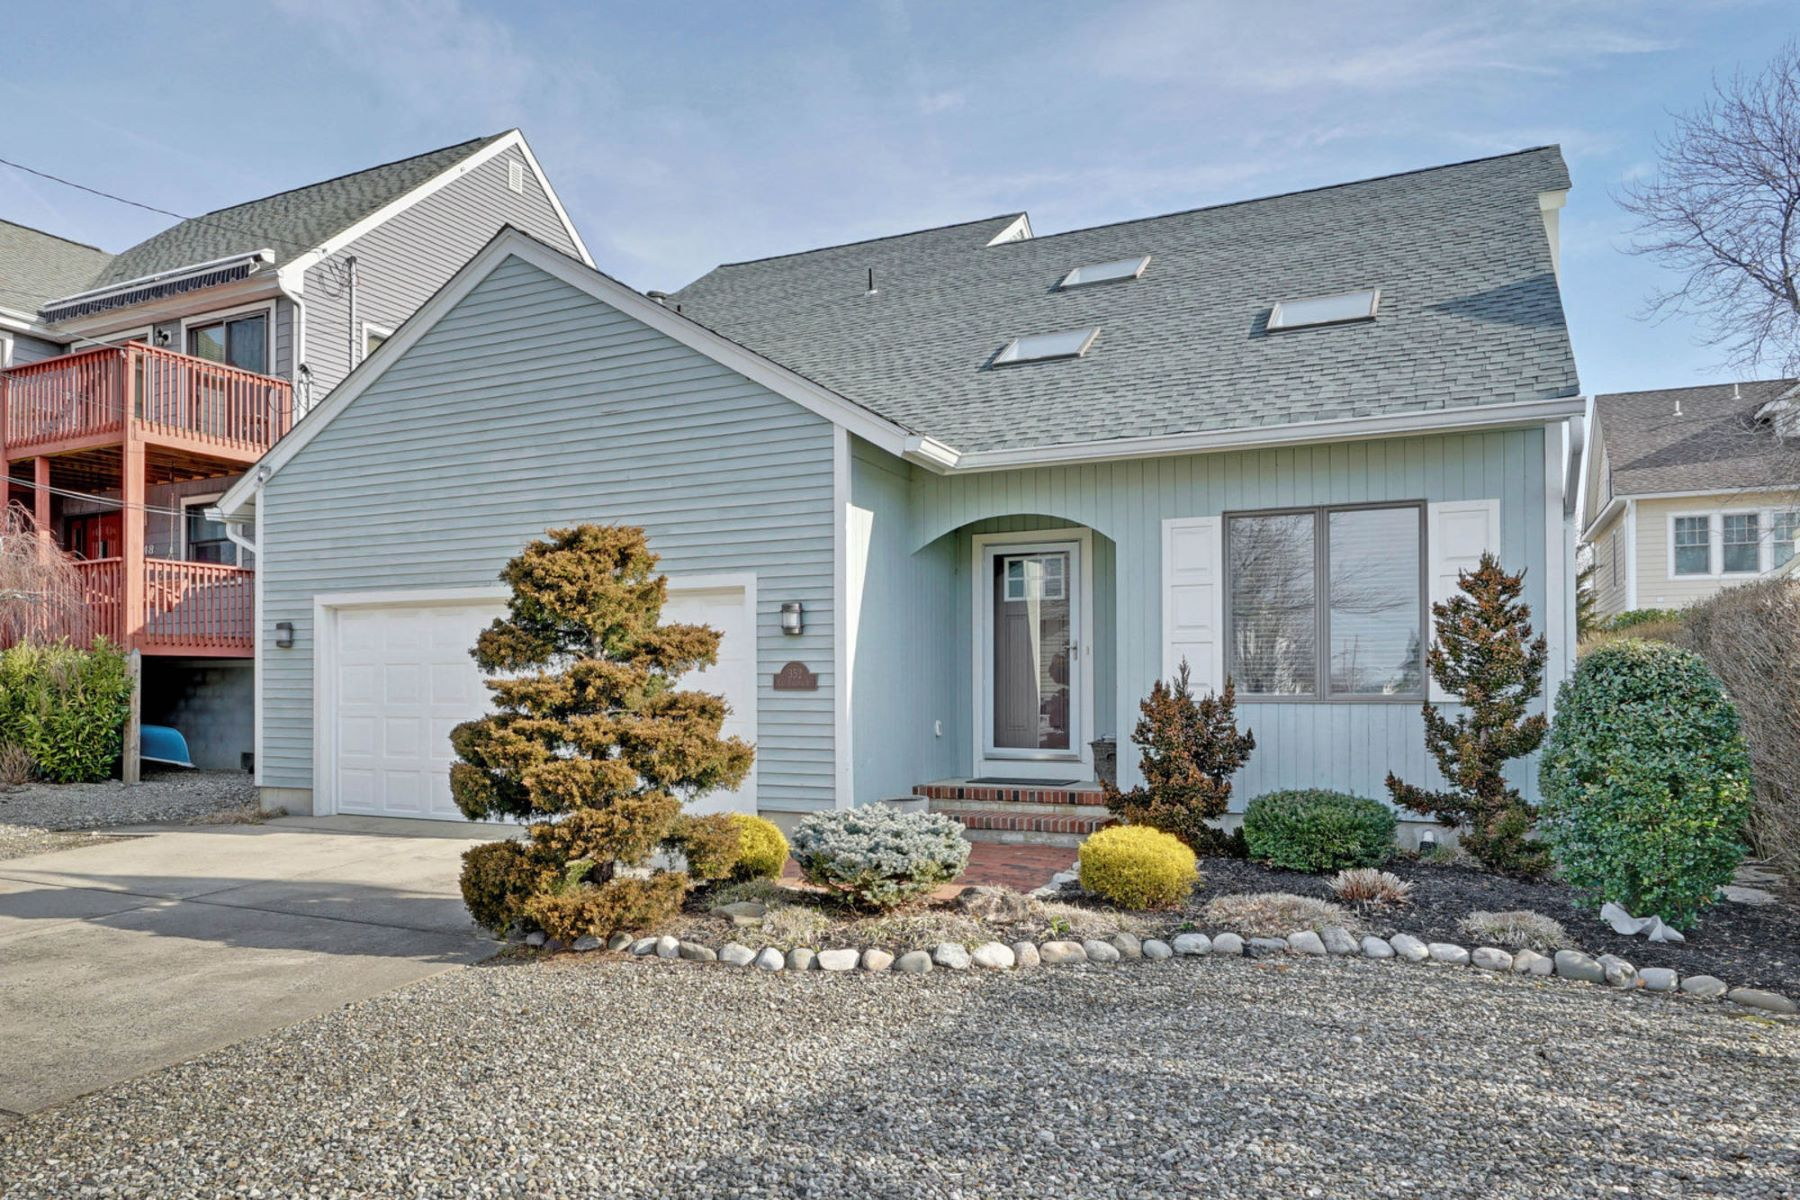 Single Family Home for Sale at A Perfect Central Manasquan Location 352 East Virginia Avenue, Manasquan, New Jersey 08736 United States